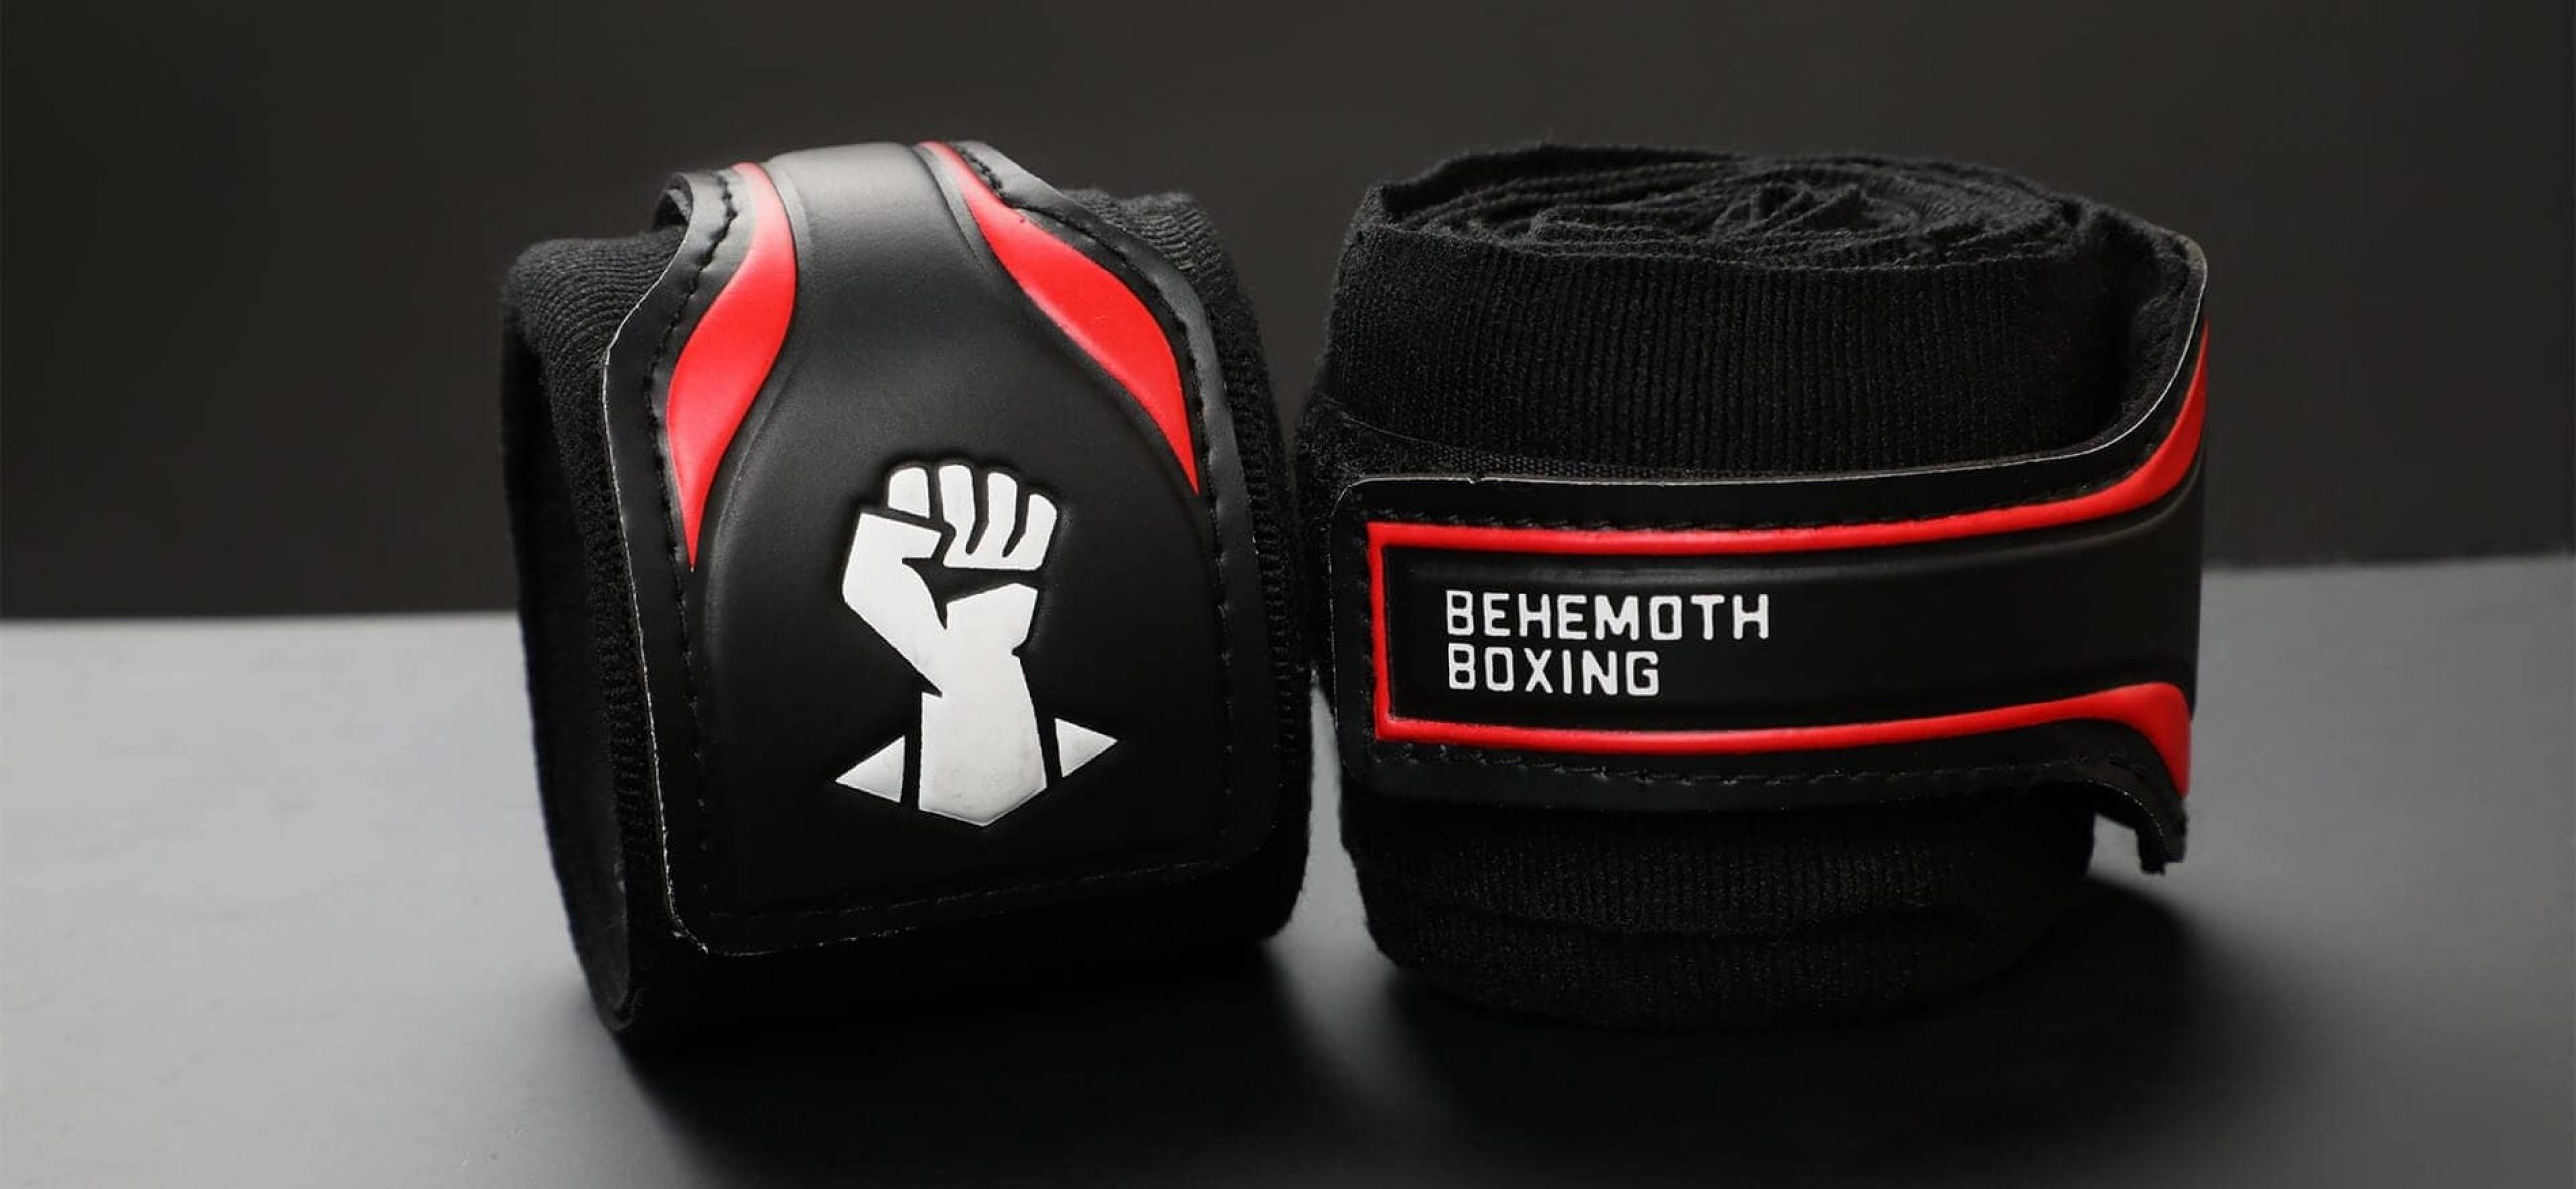 Behemoth Boxing logo design shown on black handwraps